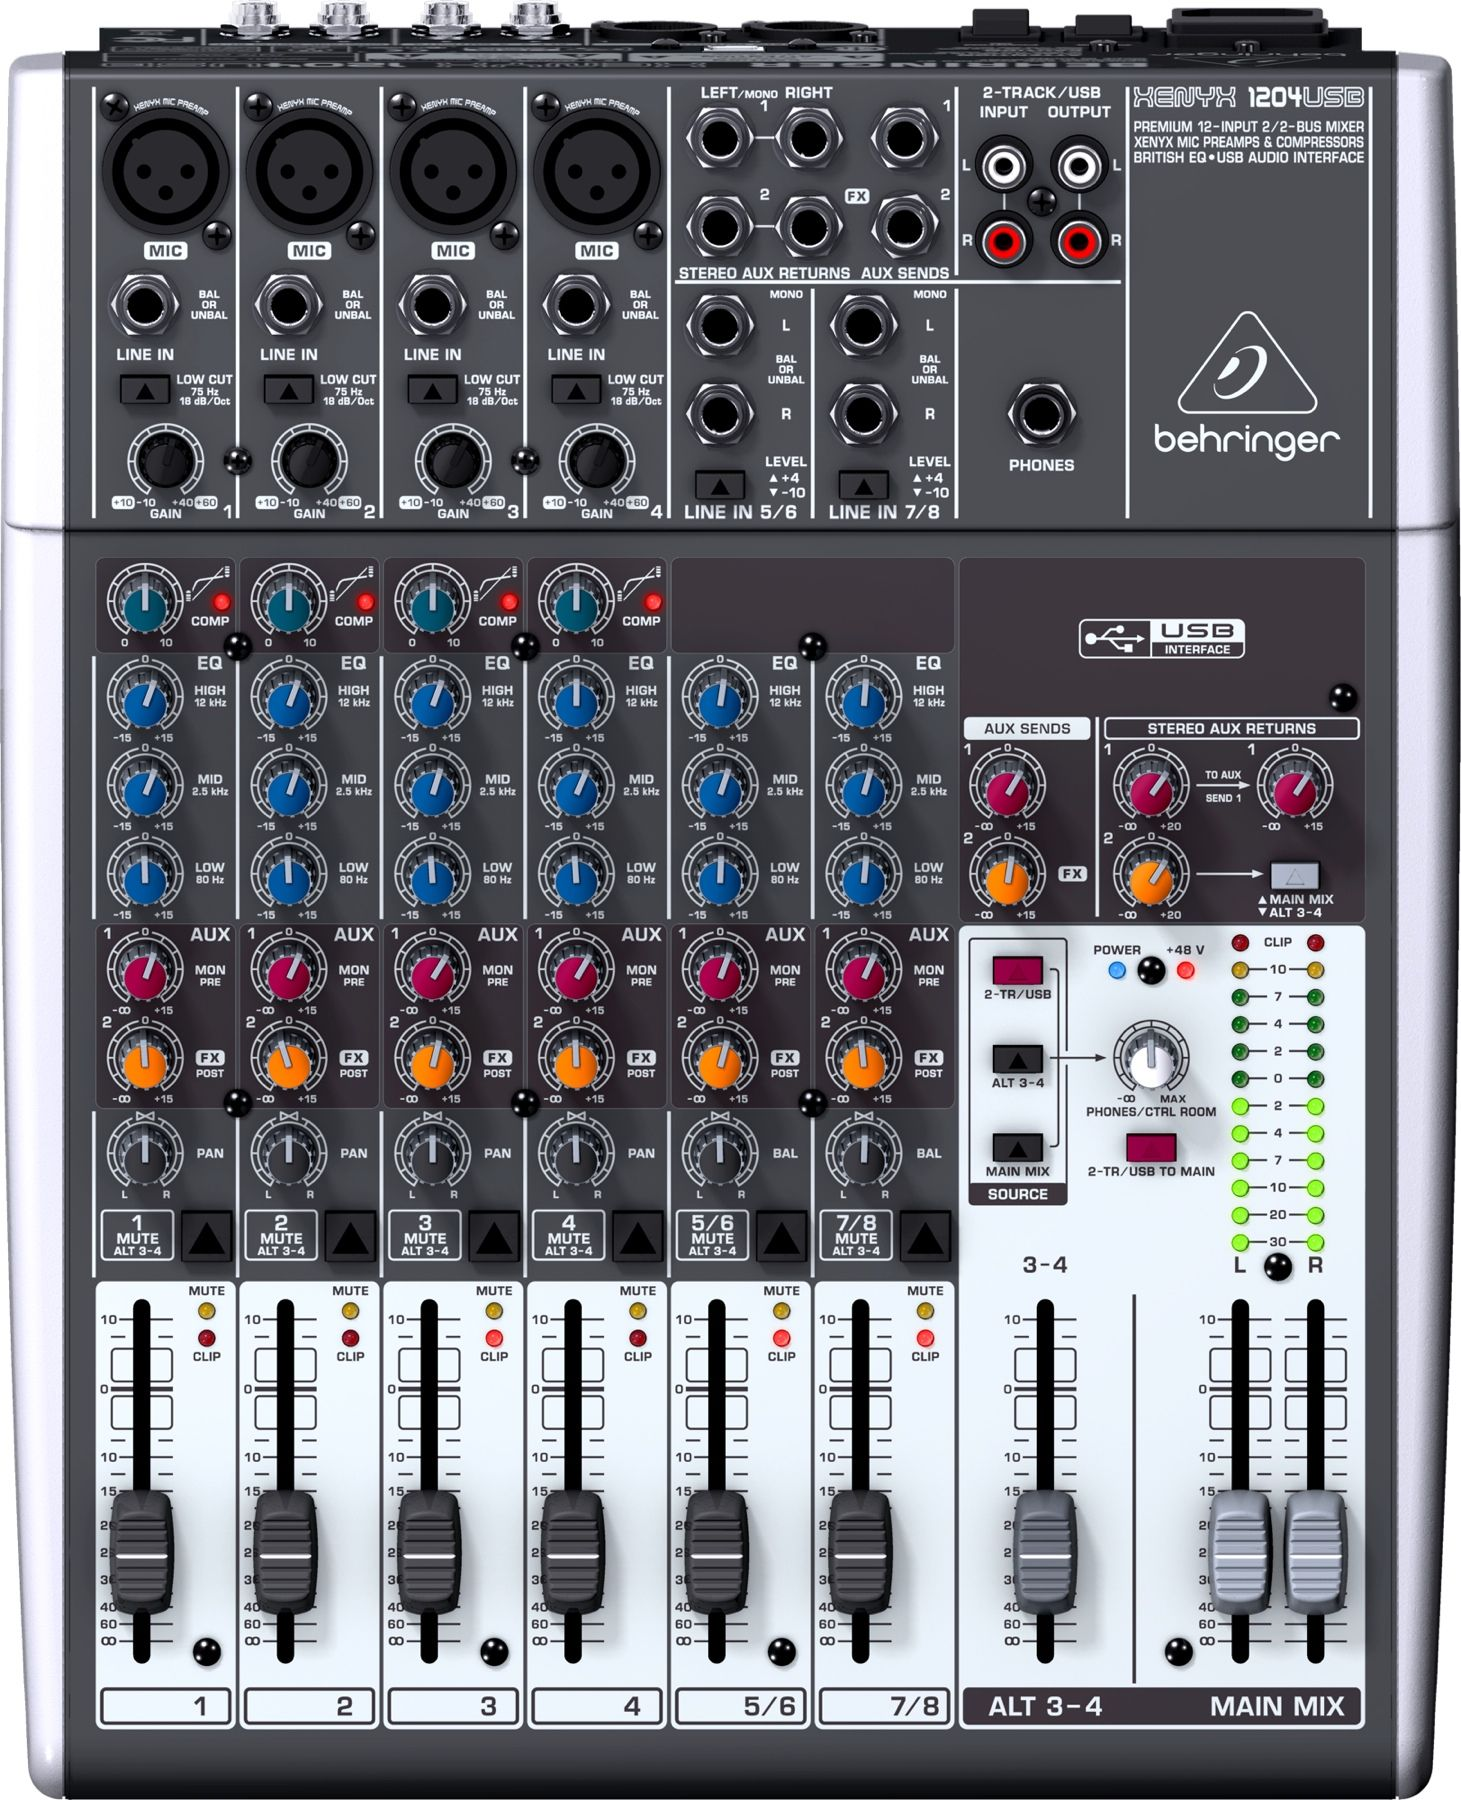 Behringer Xenyx 1204usb Mixer With Usb With Images Audio